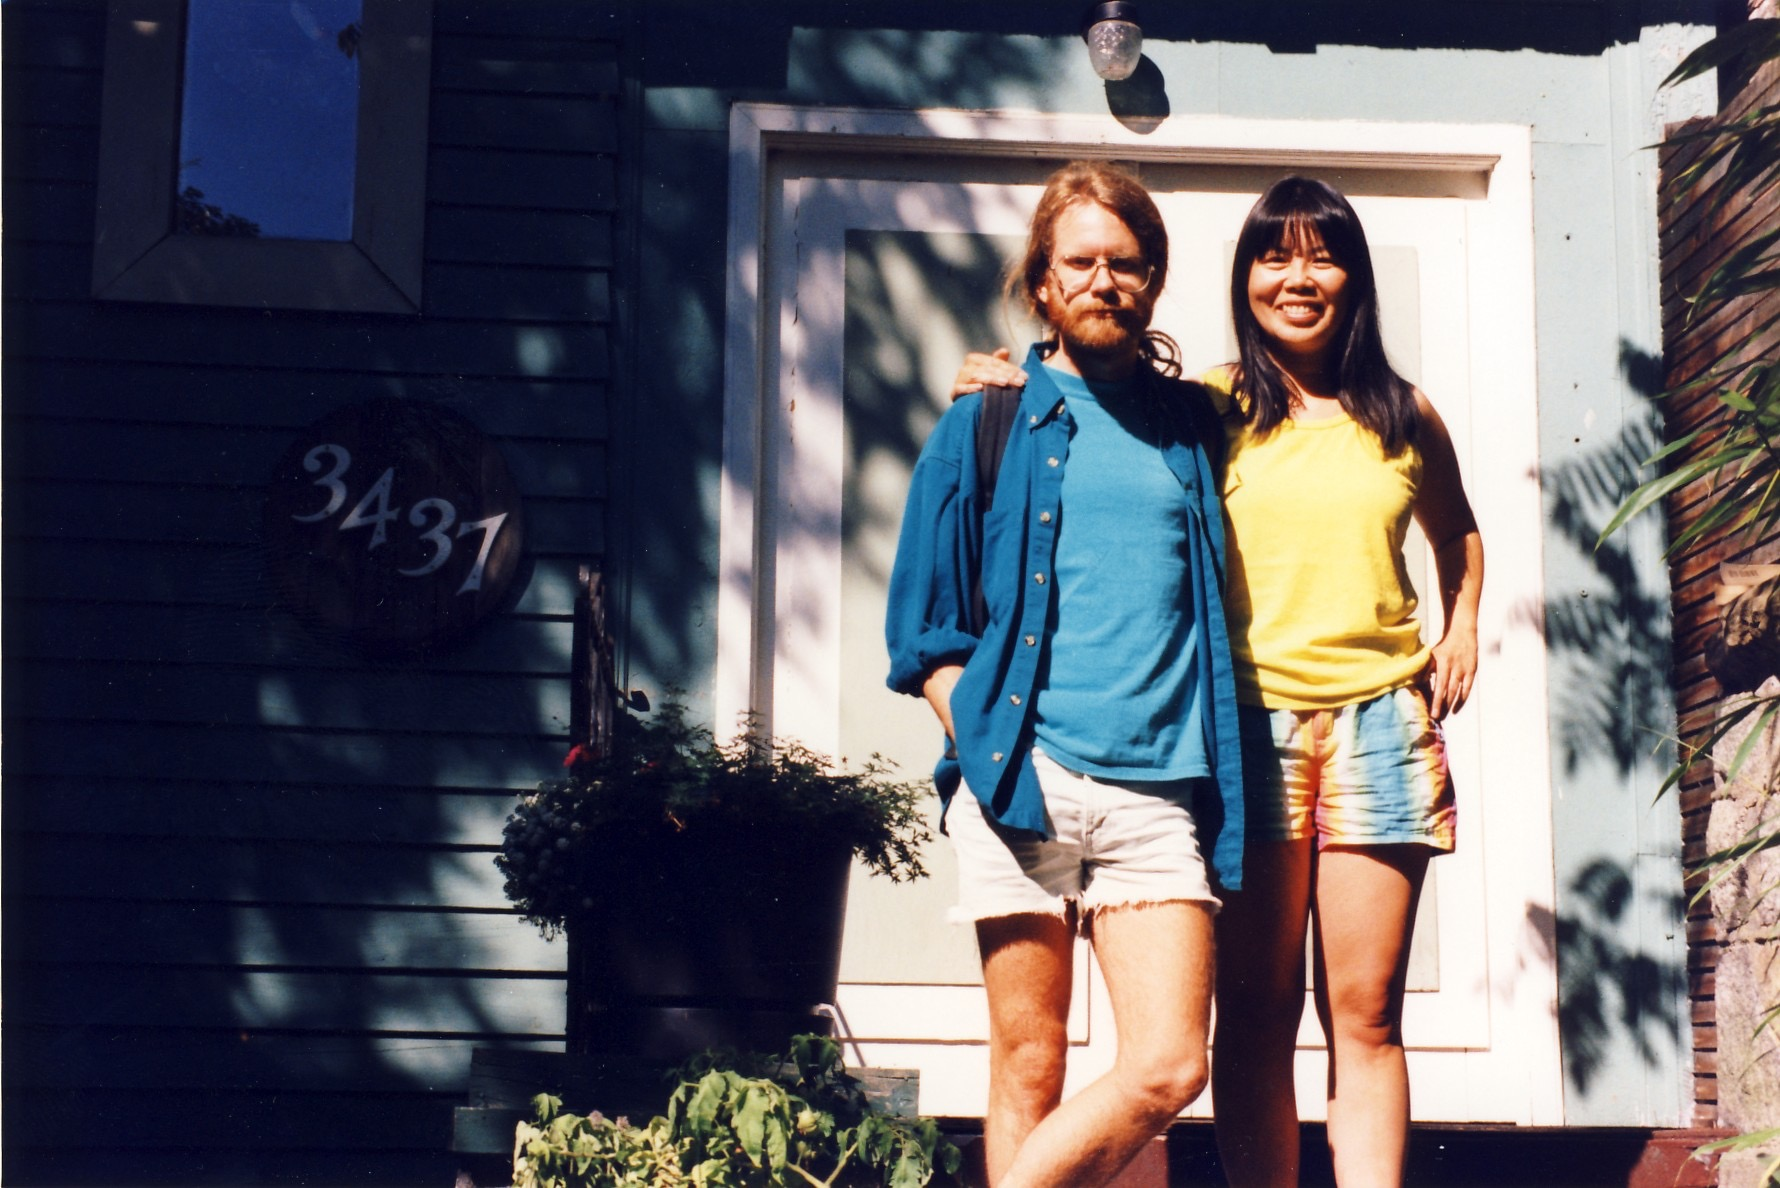 In the 90s we lived in Kitsilano while I did a Ph.D. at UBC. We had alot of parties. Eight years later I got my degree — and turned my thesis into a book,  Stranger Gods: Salman Rushdie's Other Worlds  (McGill-Queen's, 2001). Here we are in front of the house we shared with Rob and Jackie.